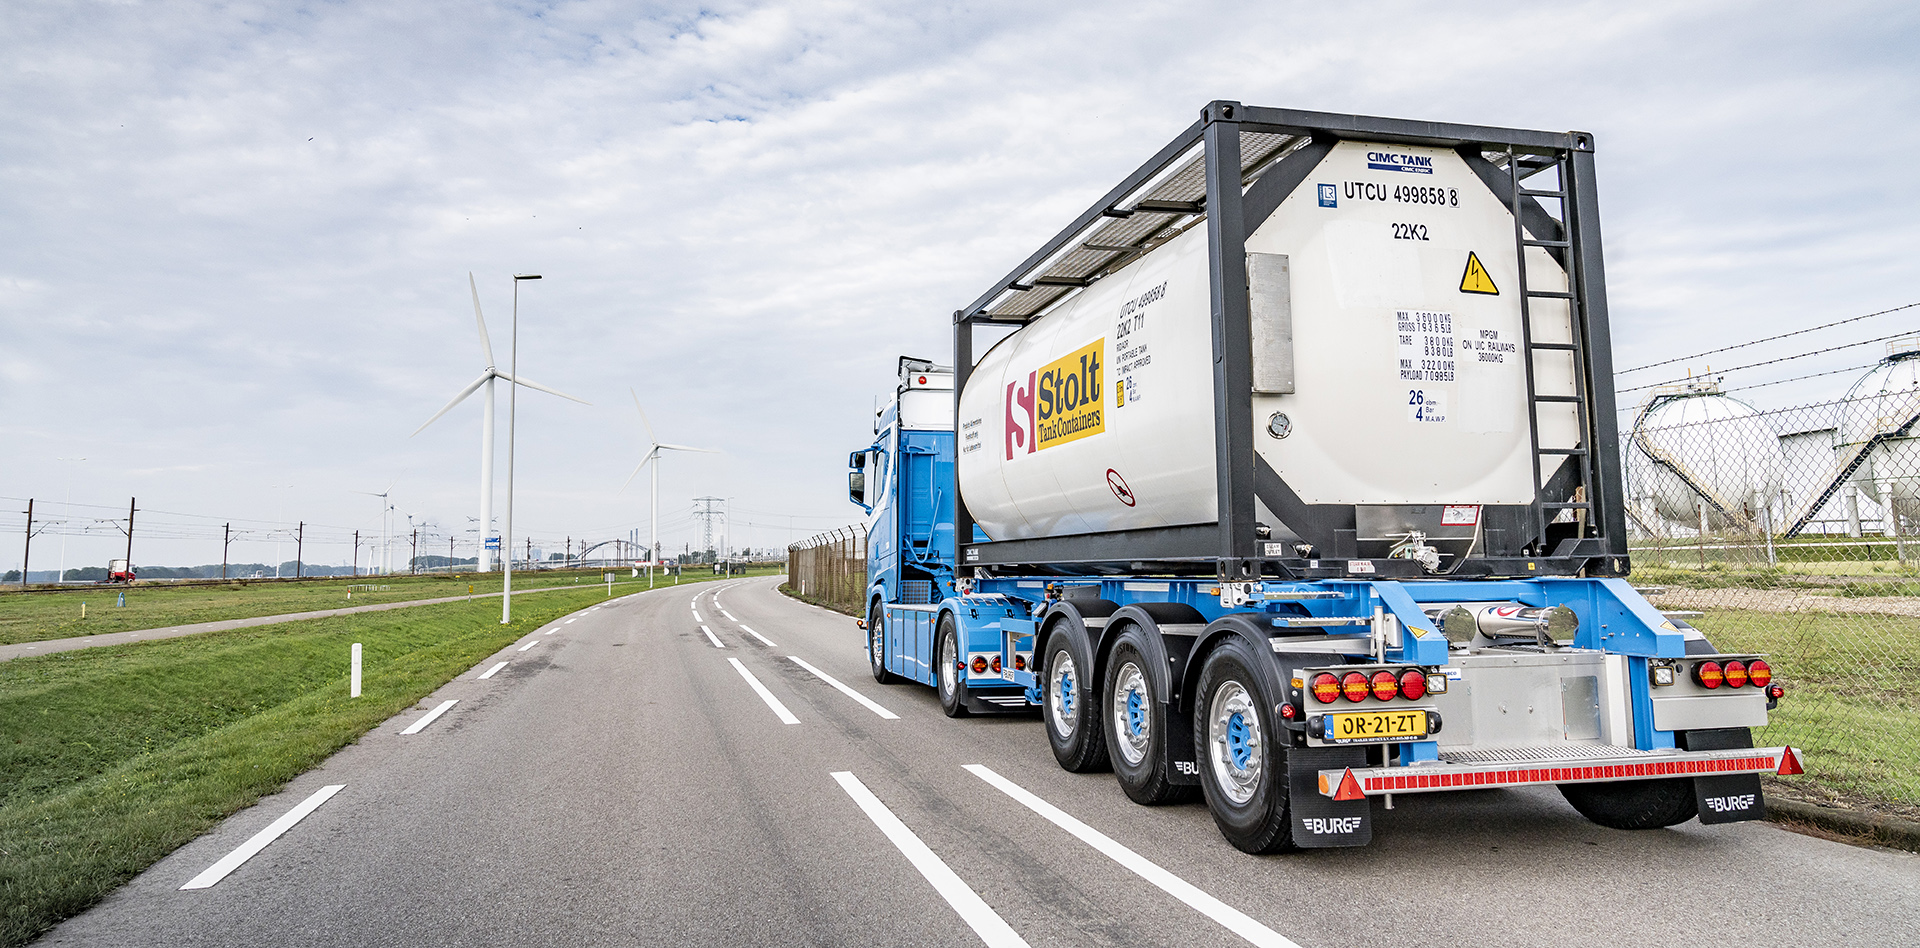 Truck driving with Stolt tank container in the industrial area